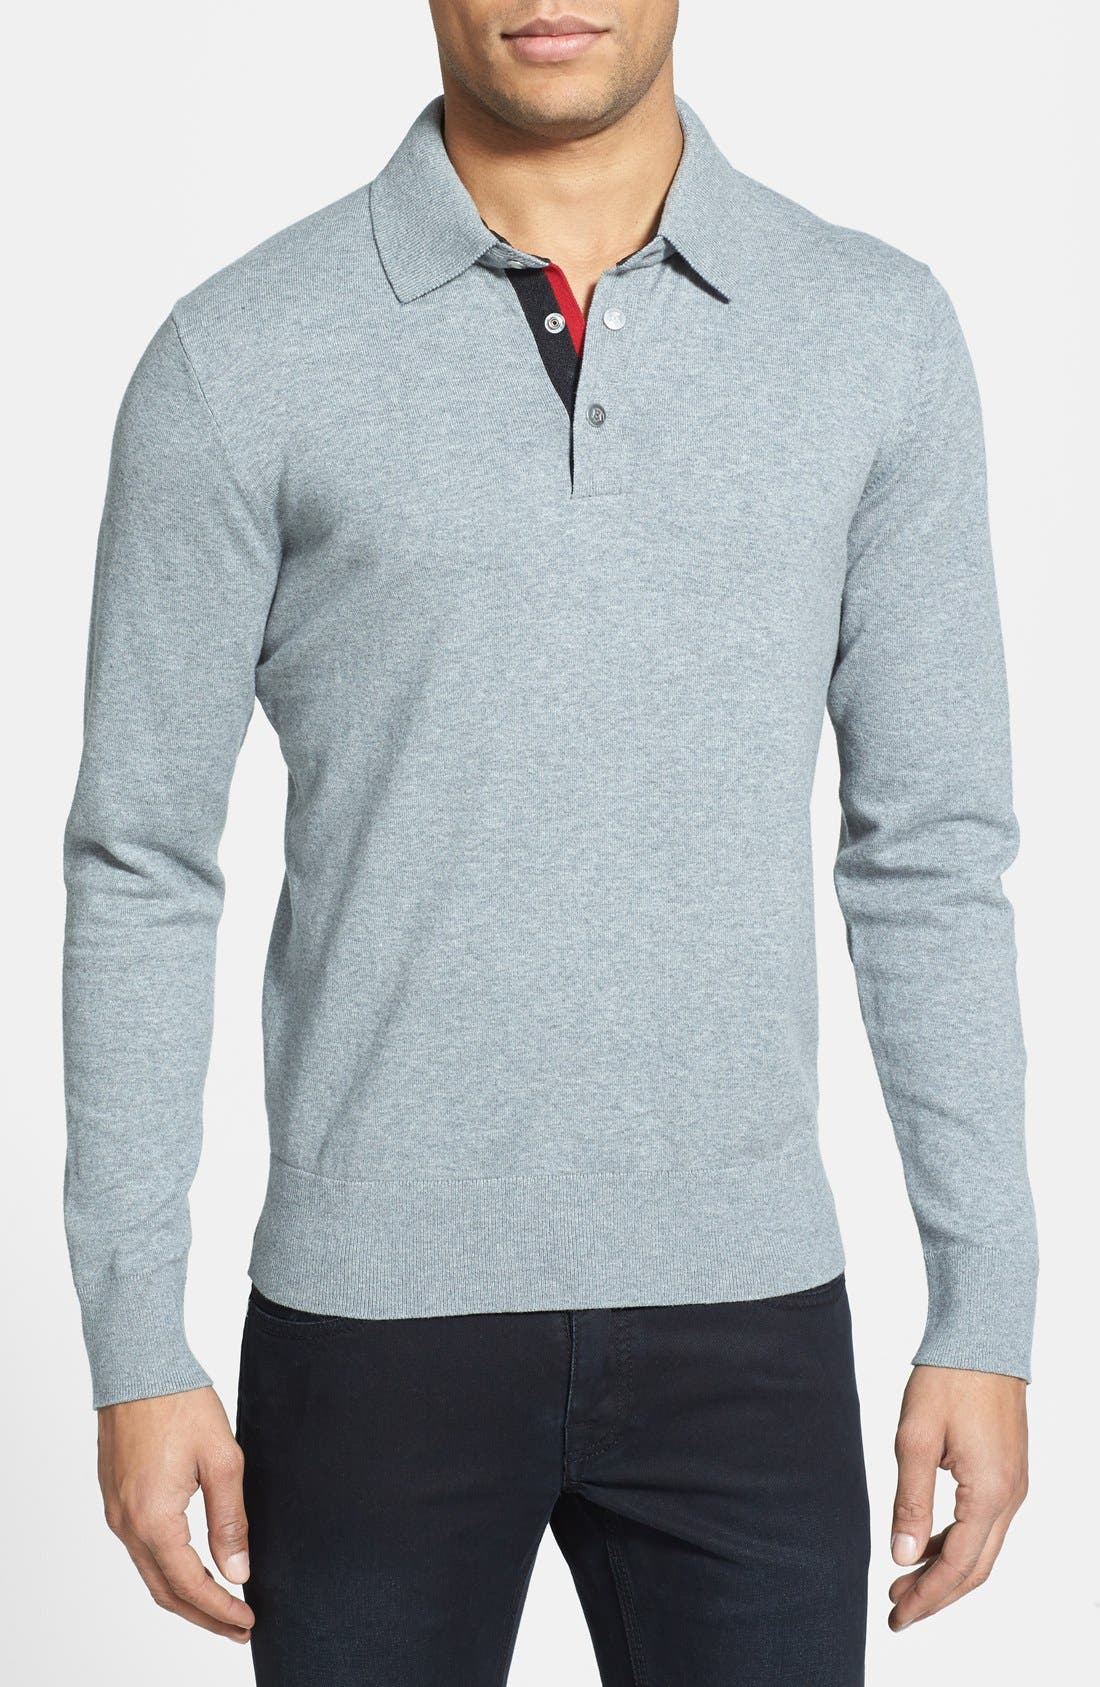 Main Image - Victorinox Swiss Army® 'Roche' Tailored Fit Stretch Polo Sweater